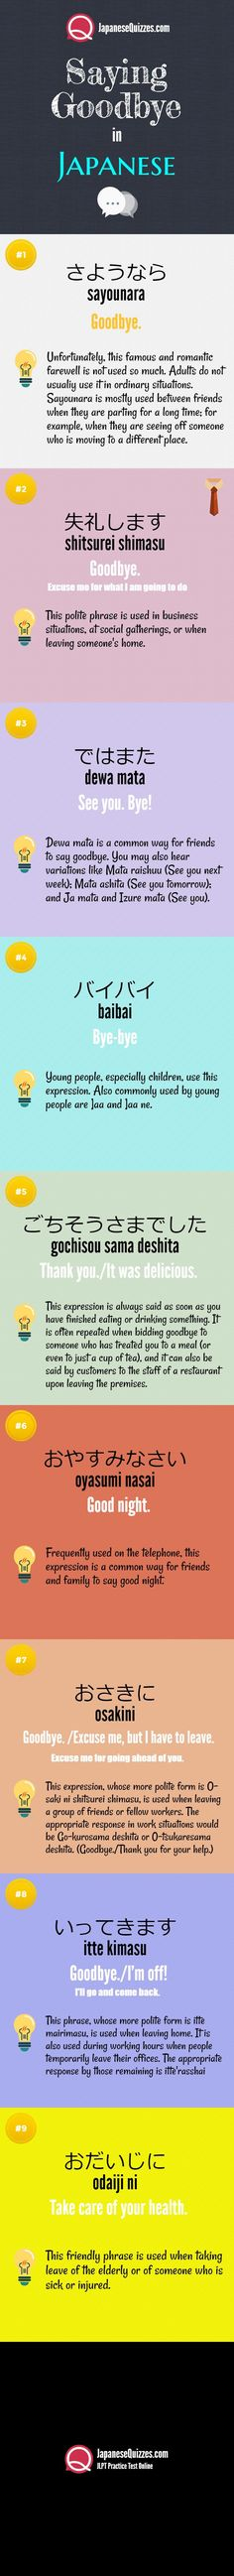 JLPT Practice test online - Saying Goodbye in Japanese